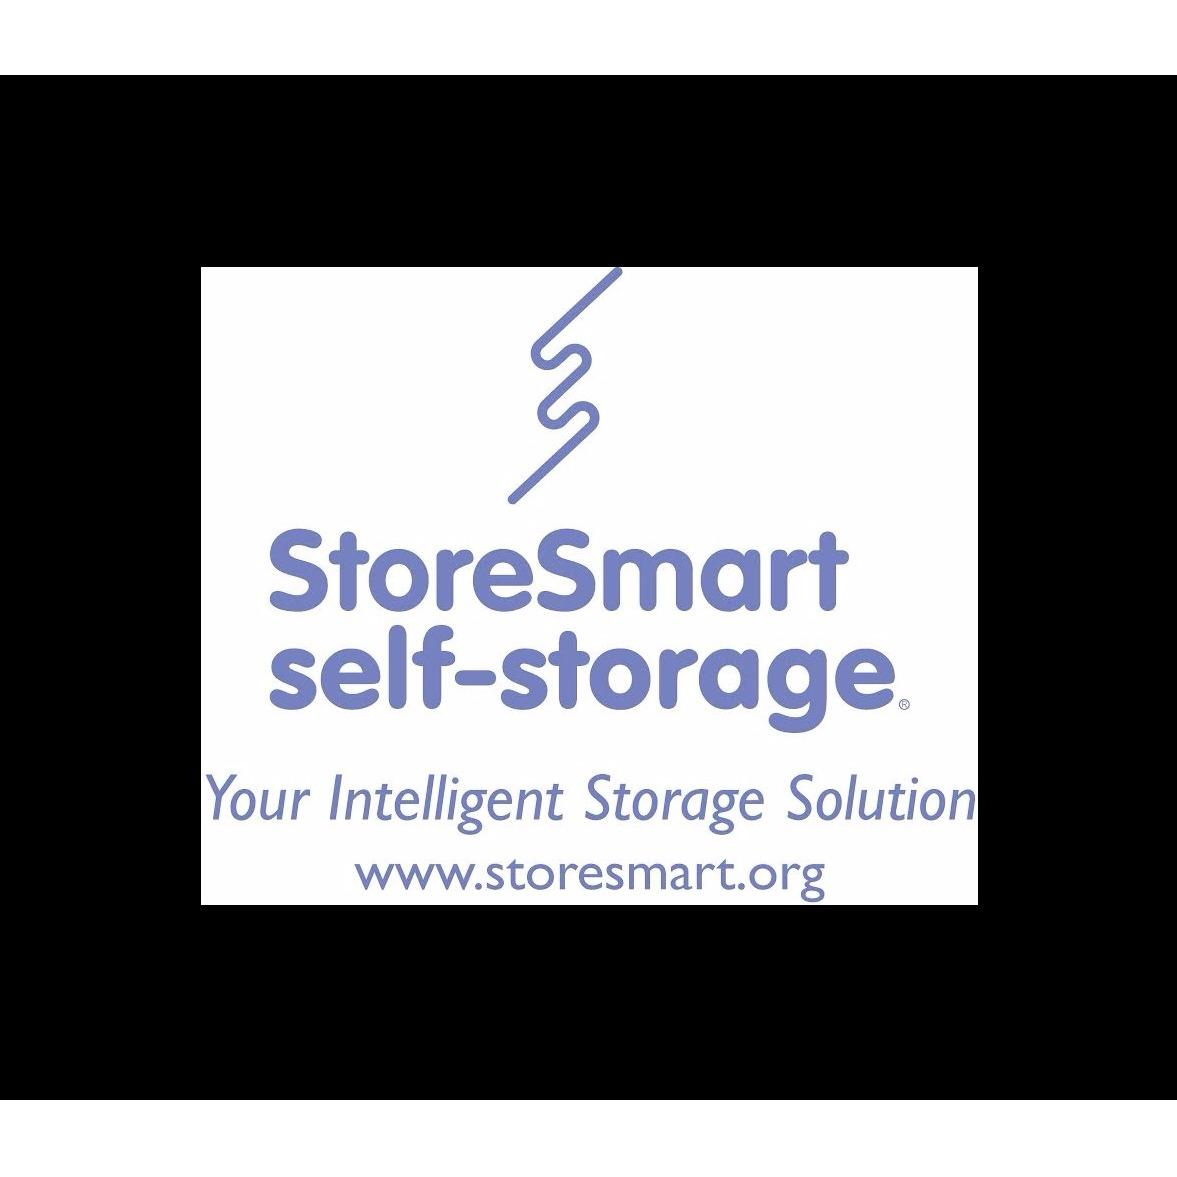 StoreSmart Self-Storage - Wando, SC - Self-Storage